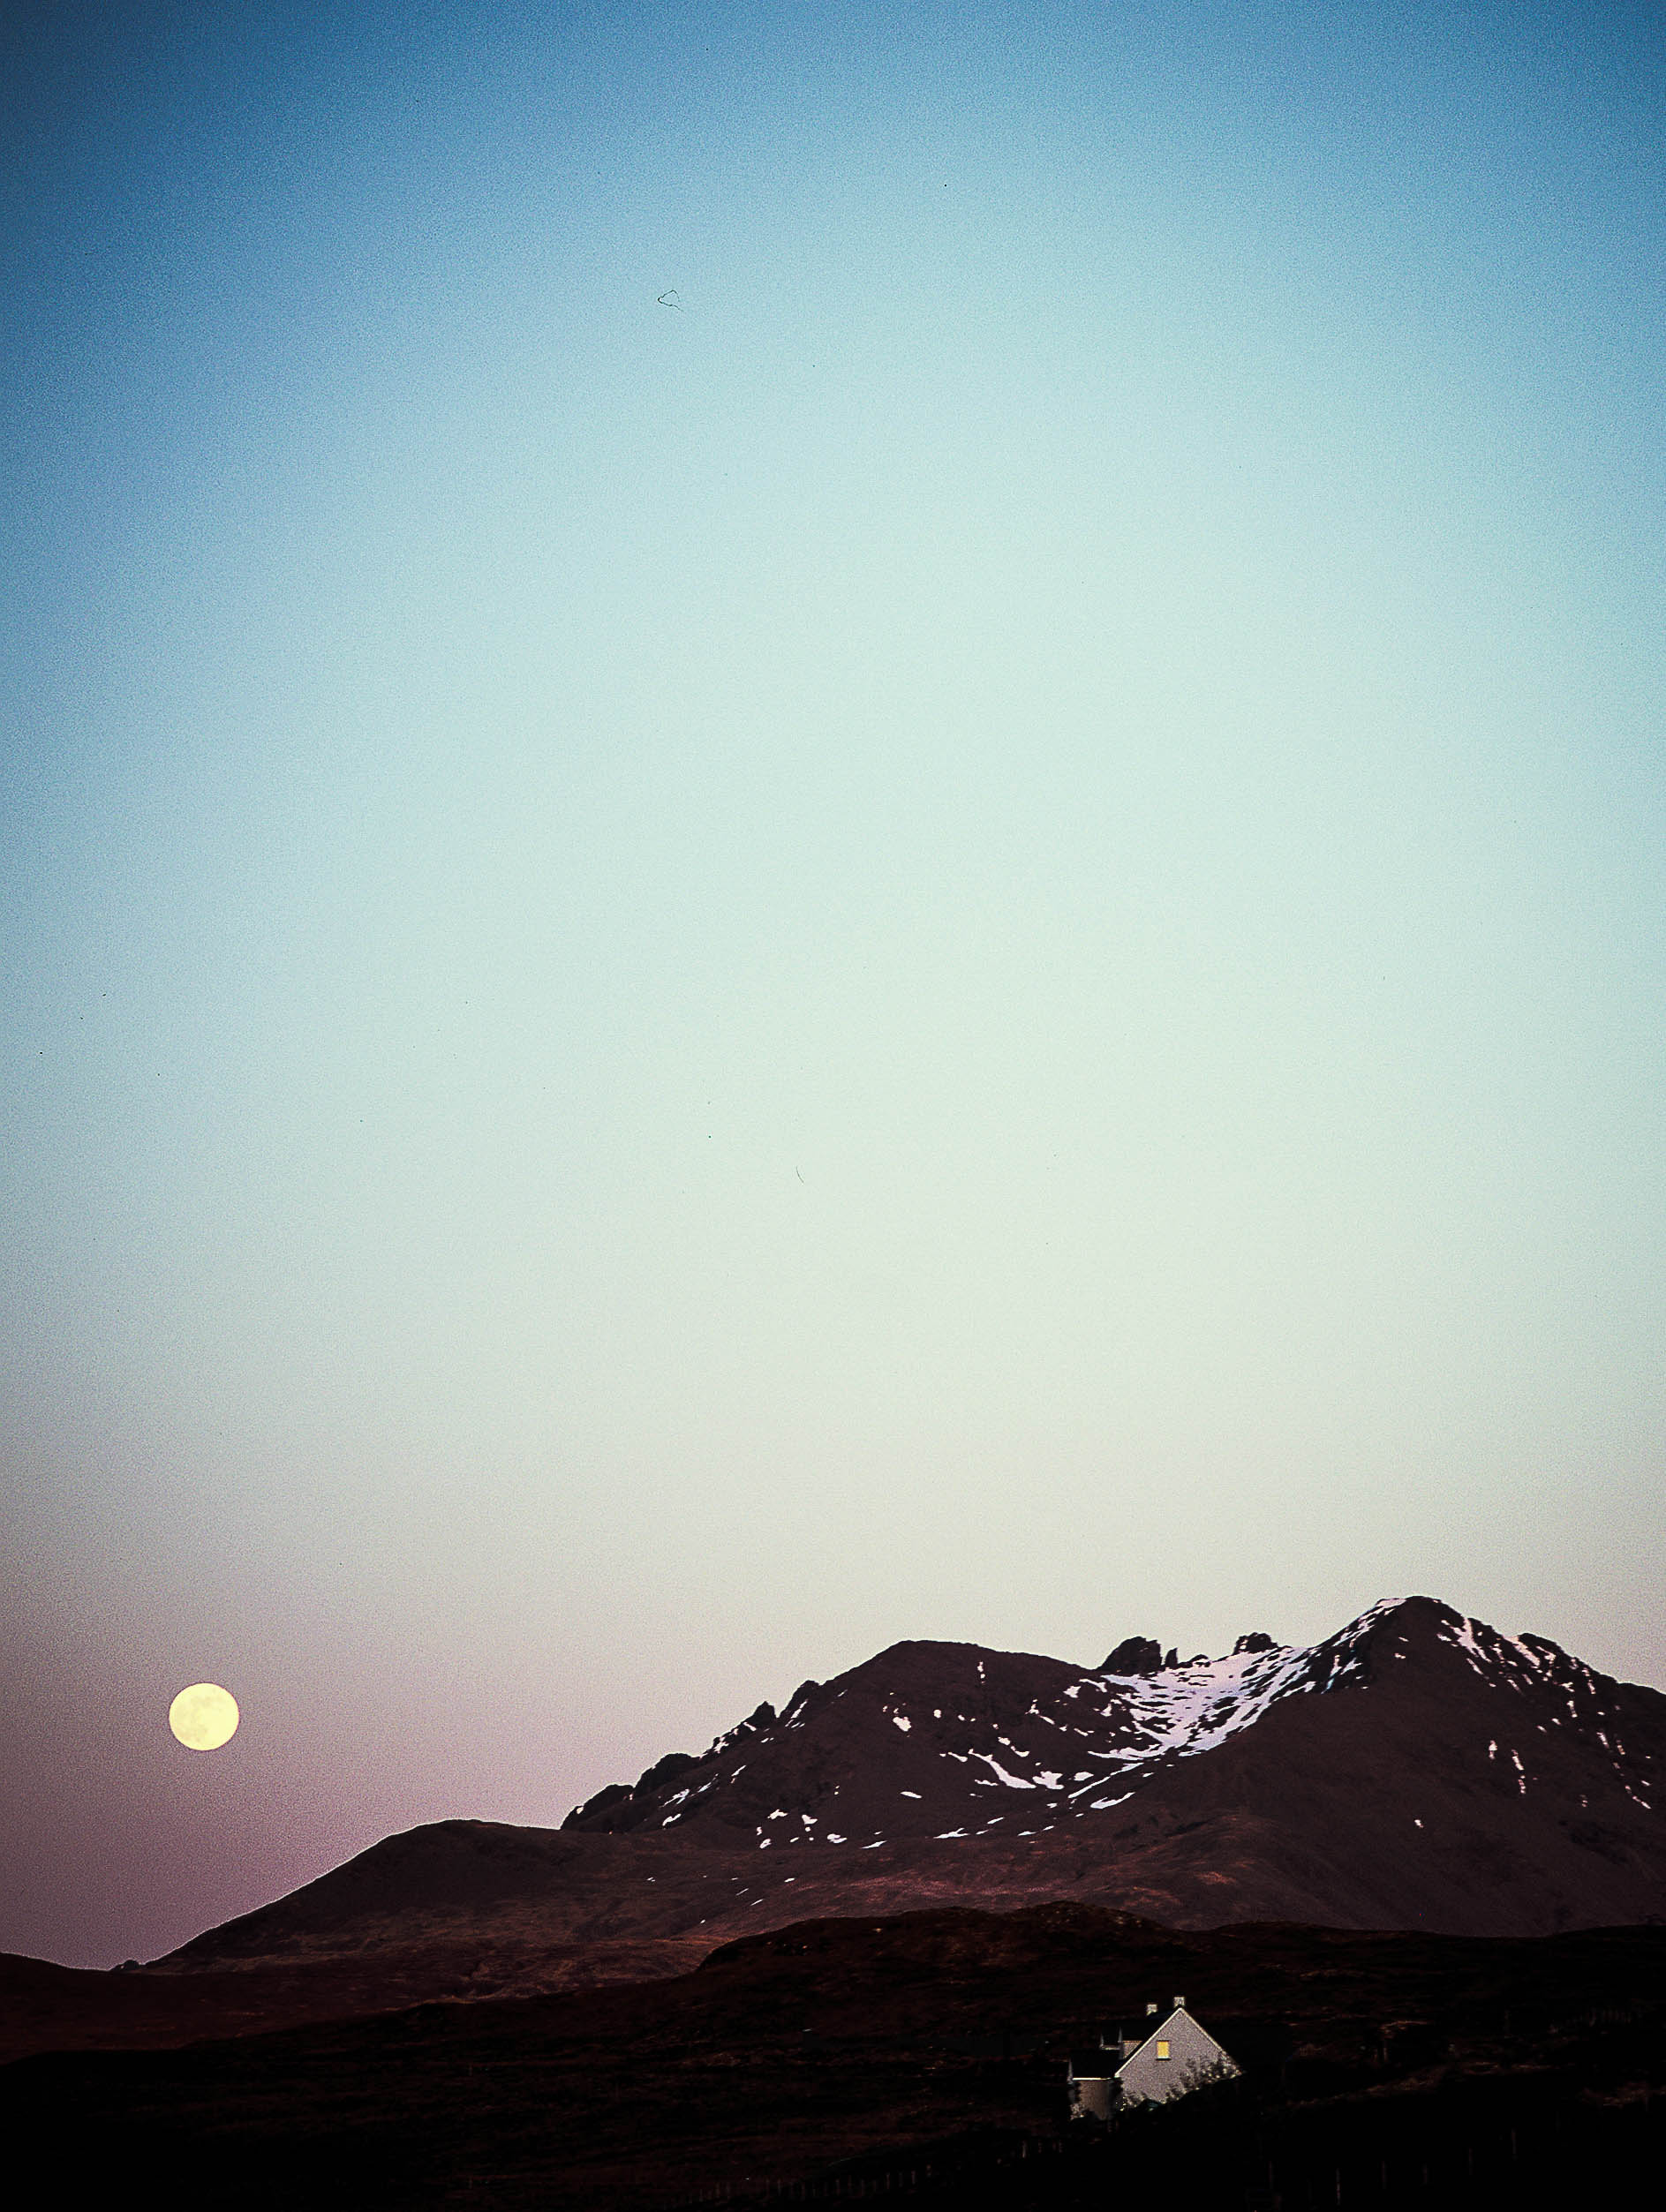 Moonrise over the Cuillin Mountains. I had my husband stop at the top of a cliff road with no shoulder so that I could climb on top of the car to get this shot. This was also my first time shooting slide film (which is really tricky), but glad I took the chance.